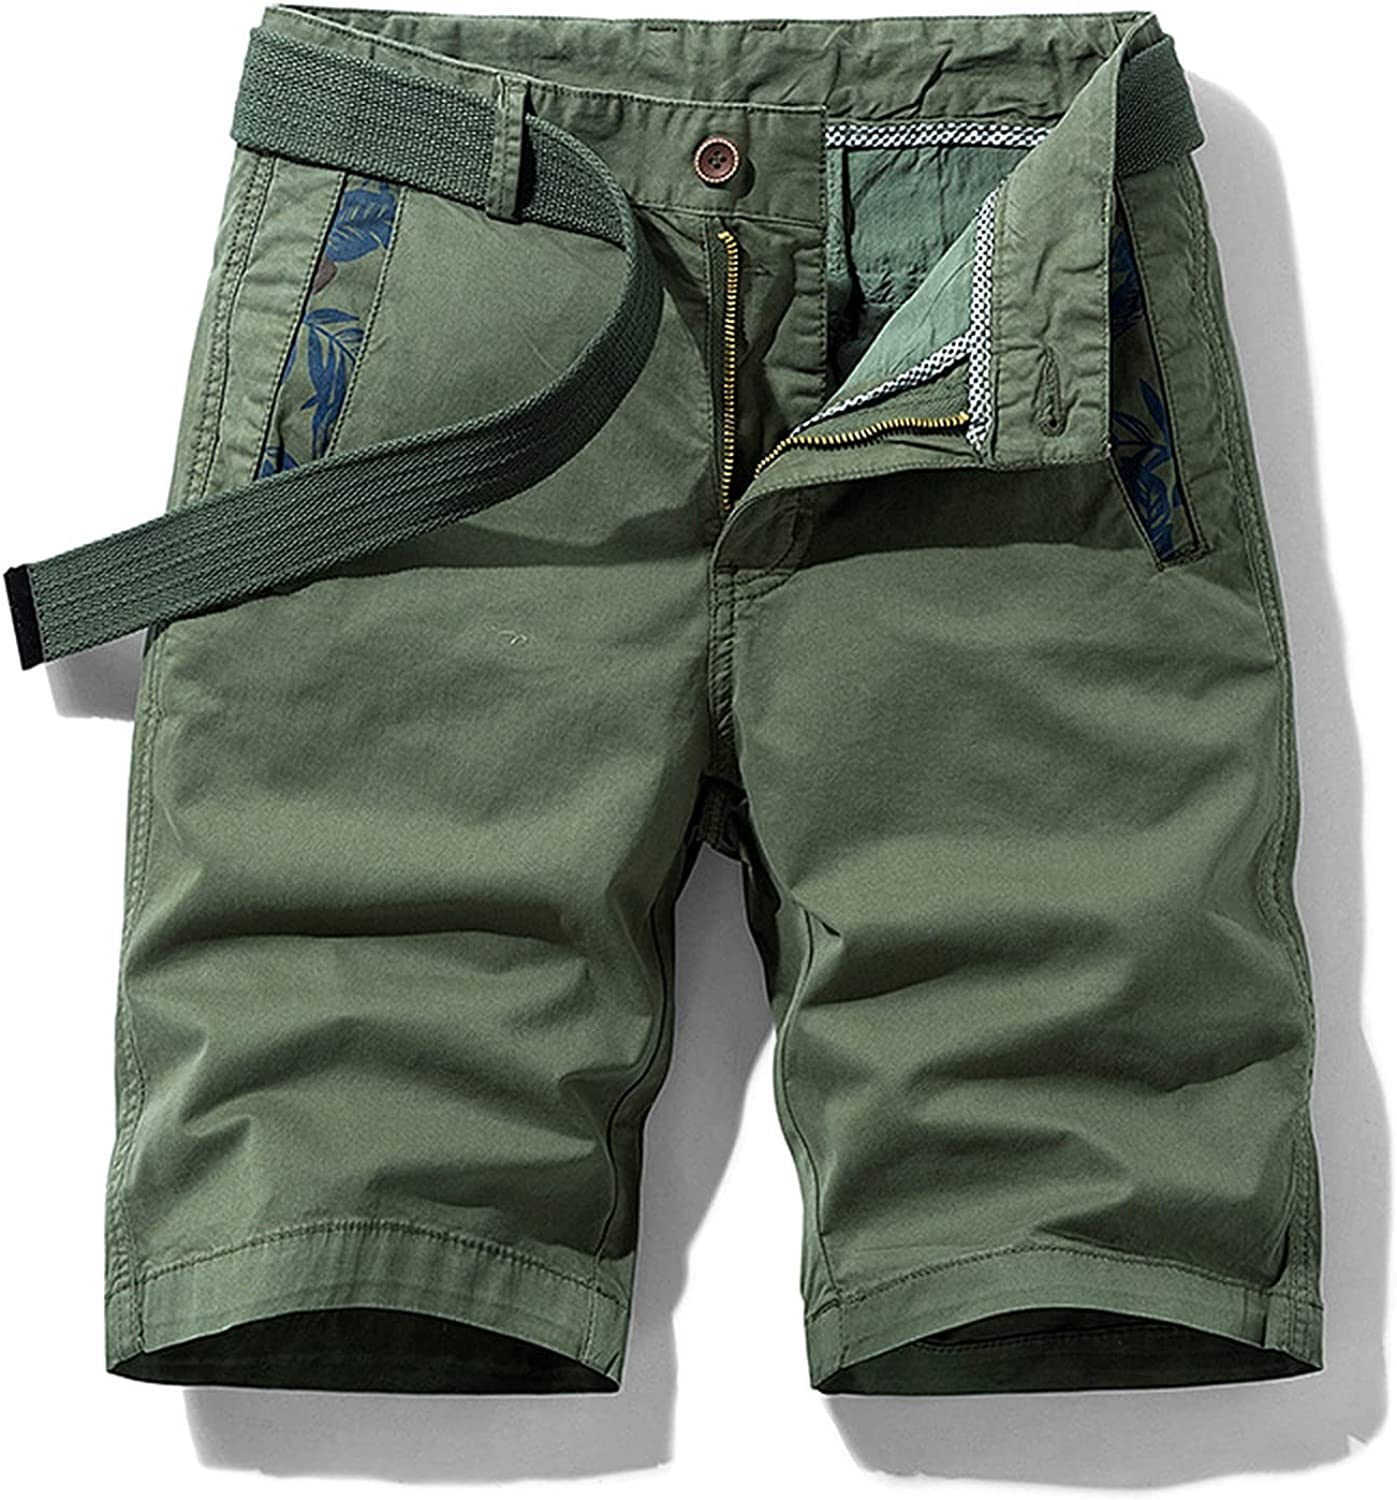 Dellk New Mens Military Cargo Shorts Army Camouflage Tactical Men Cotton Loose Size Work Casual Short Pants